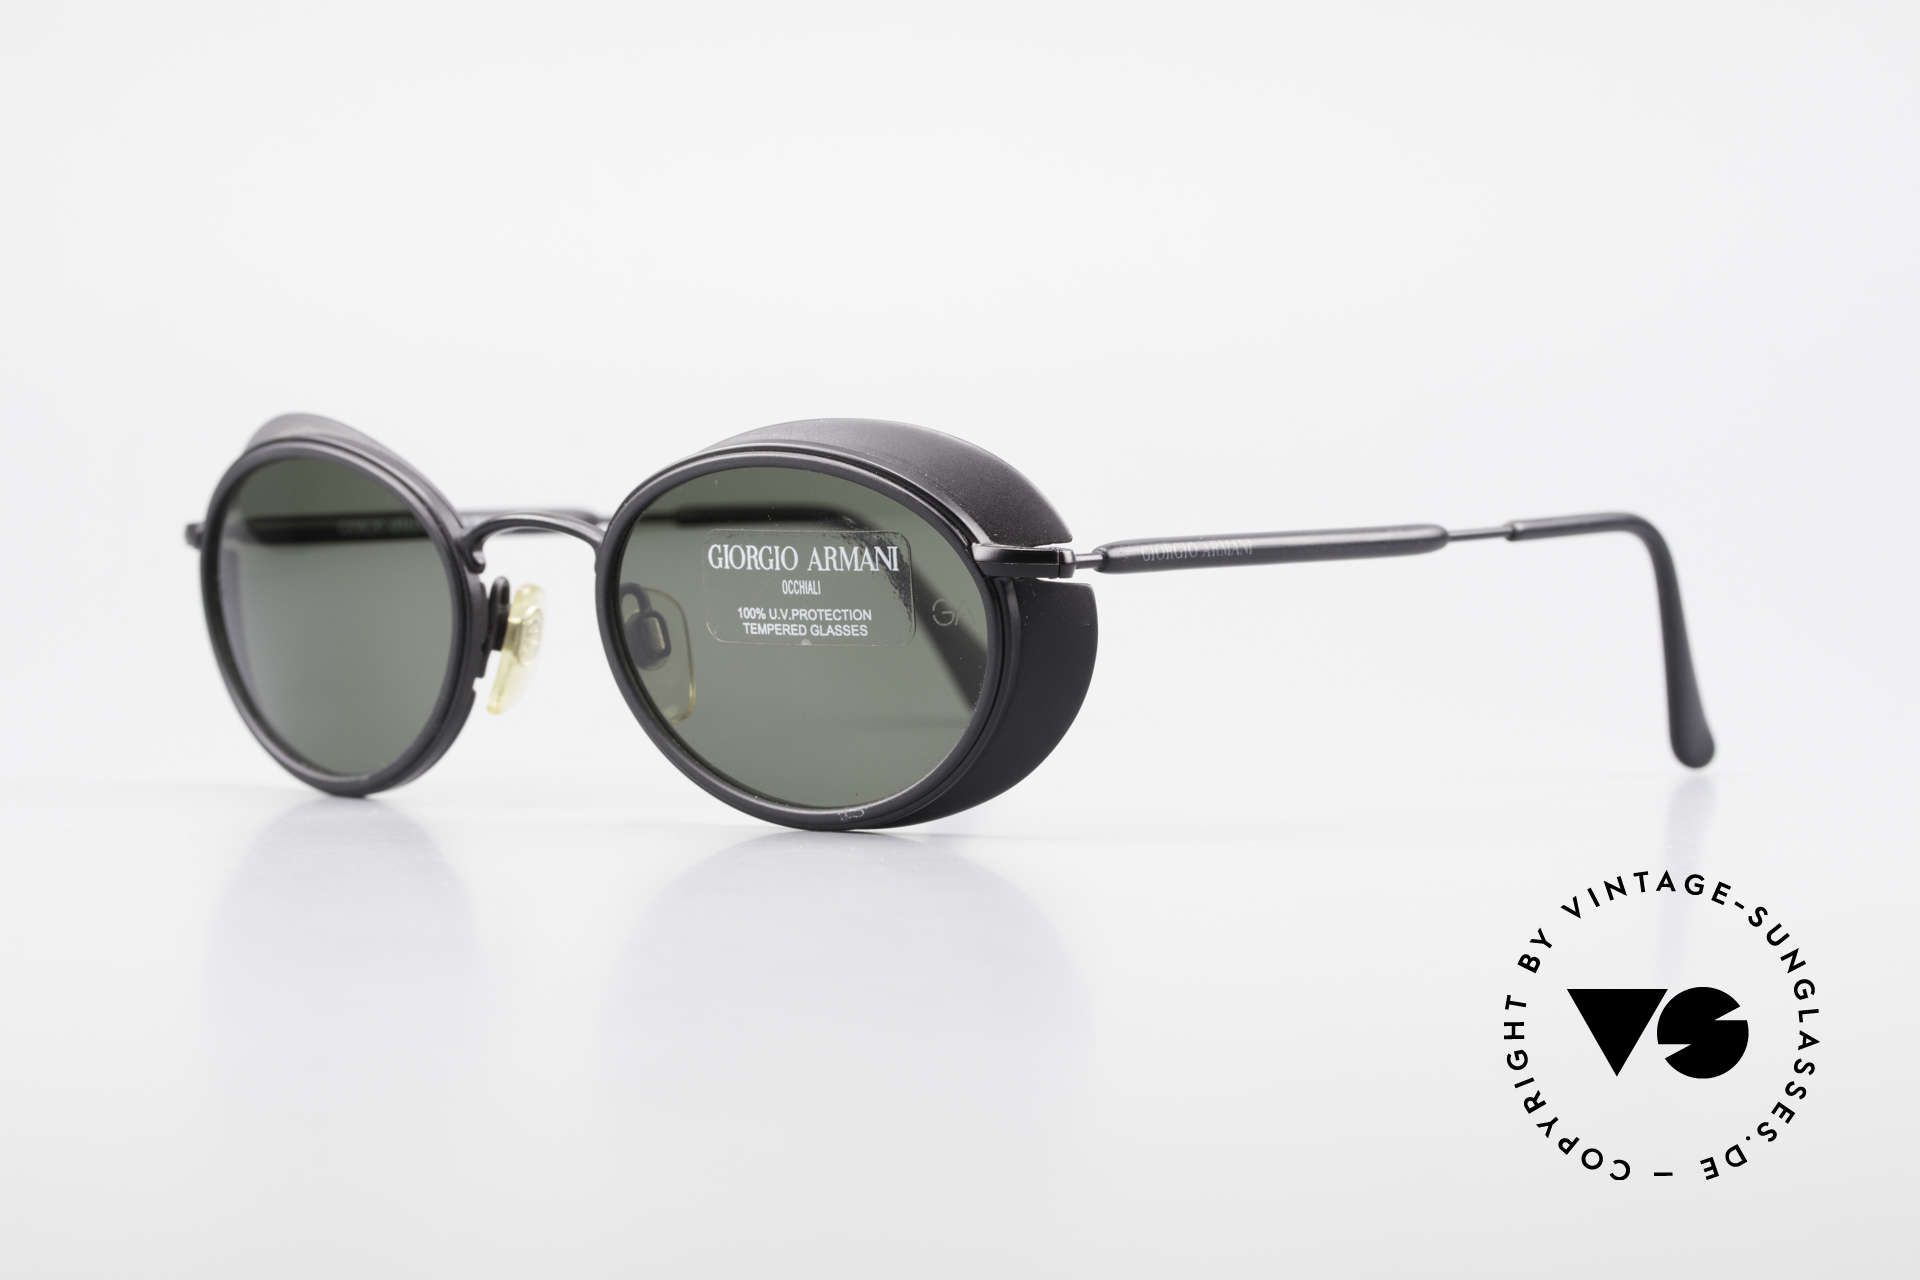 Giorgio Armani 666 Side Shields Frame Oval, nonreflecting coated lenses (with 'GA' engraving/etching), Made for Men and Women